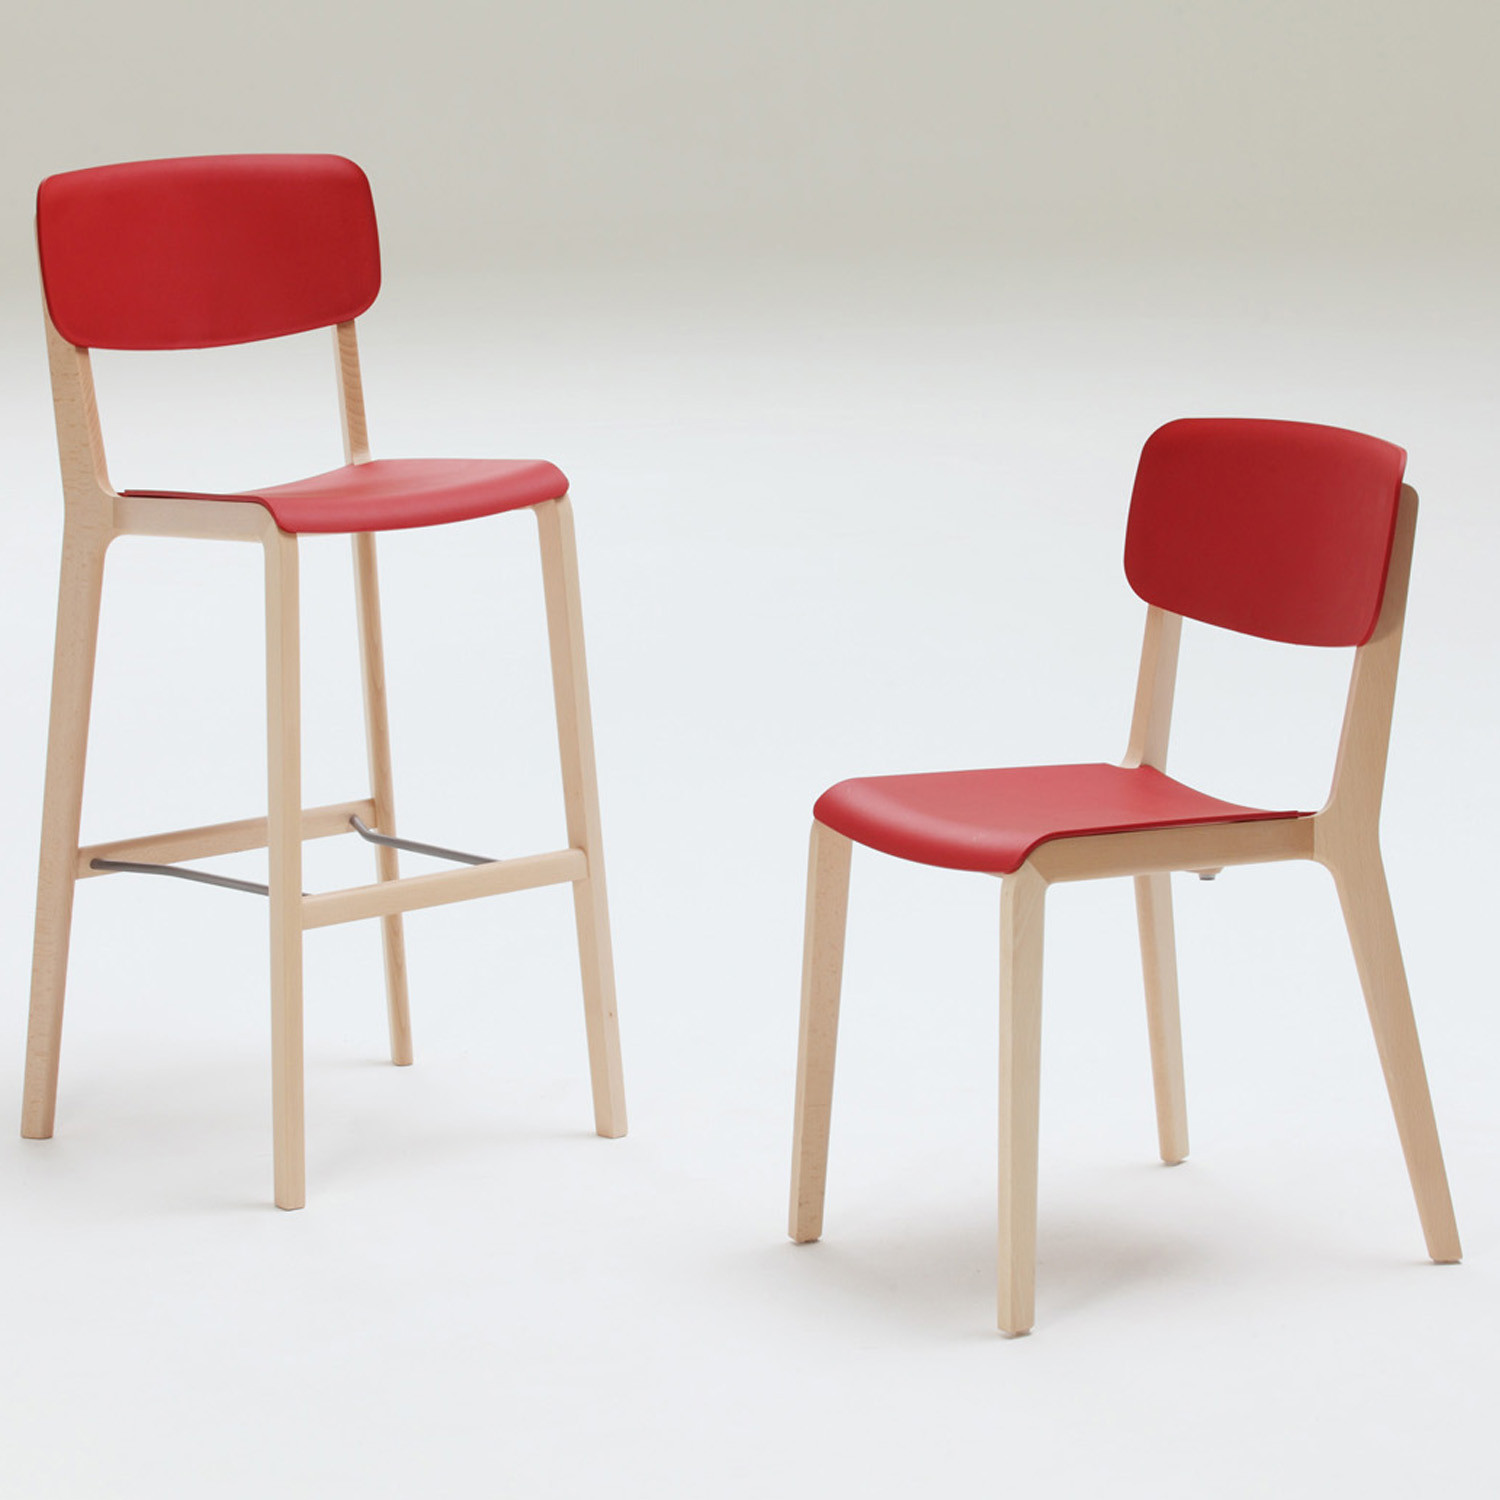 Jonty Barstool and Chair